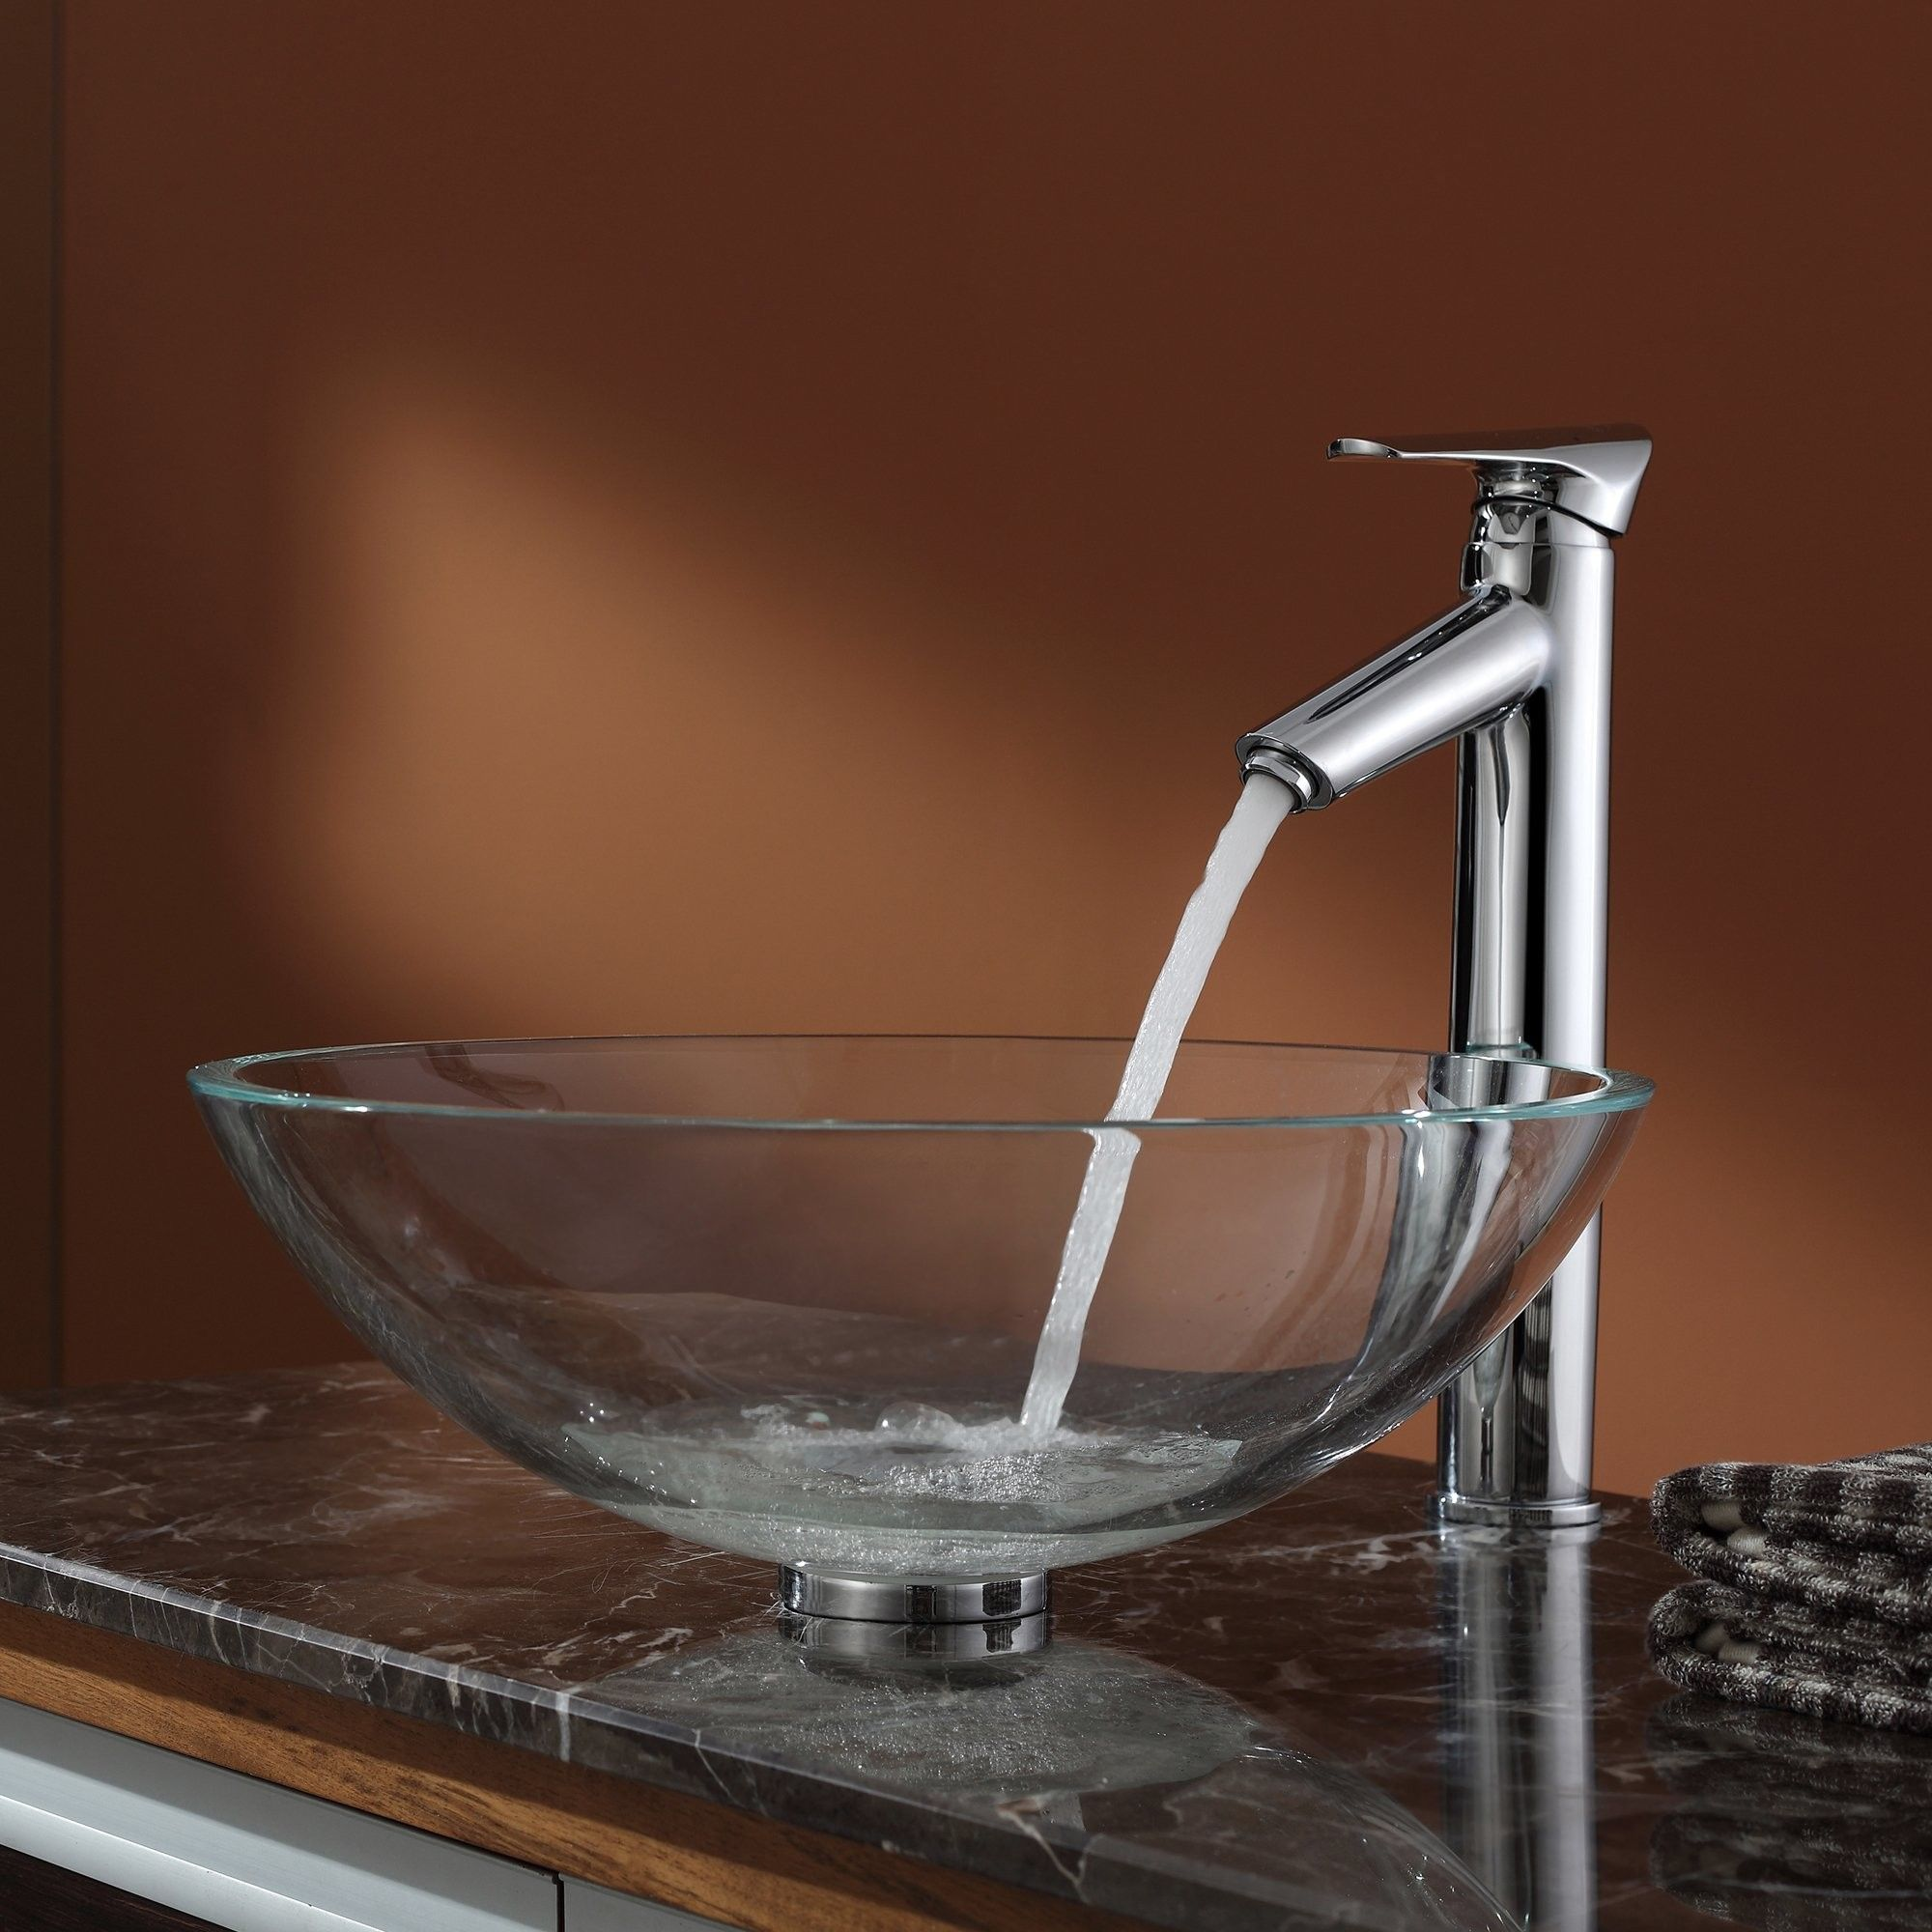 Crystal Clear Glass Vessel Sink and Decus Faucet Wayfair Sinks